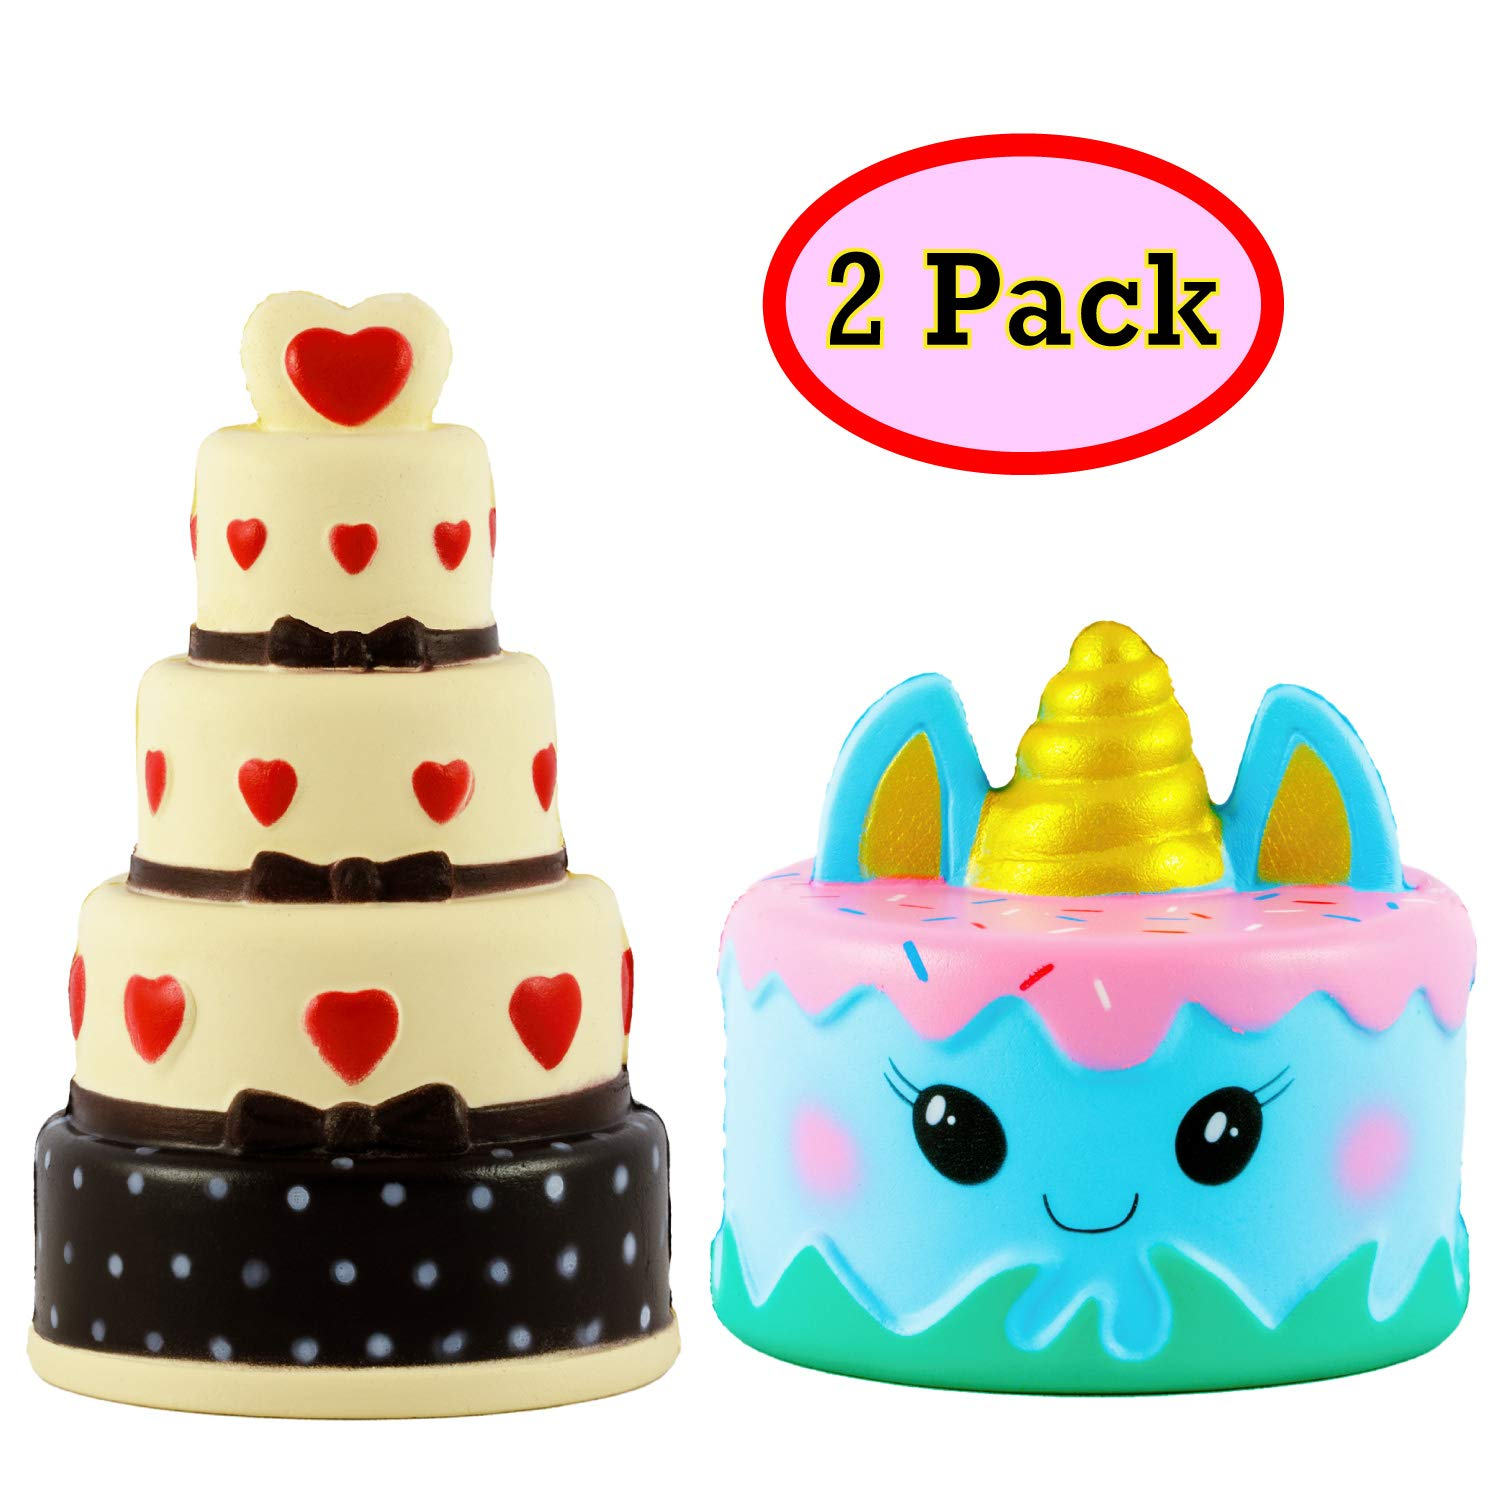 OzBSP Squishies Jumbo Slow Rising Cake Set Kawaii Cute Squishy - Premium Quality | Unicorn Mousse Cream Scented Narwhal Cake | 5 Layer Chocolate Heart Cake | Kids Stress Relief Squeeze Toy | 2 Pack